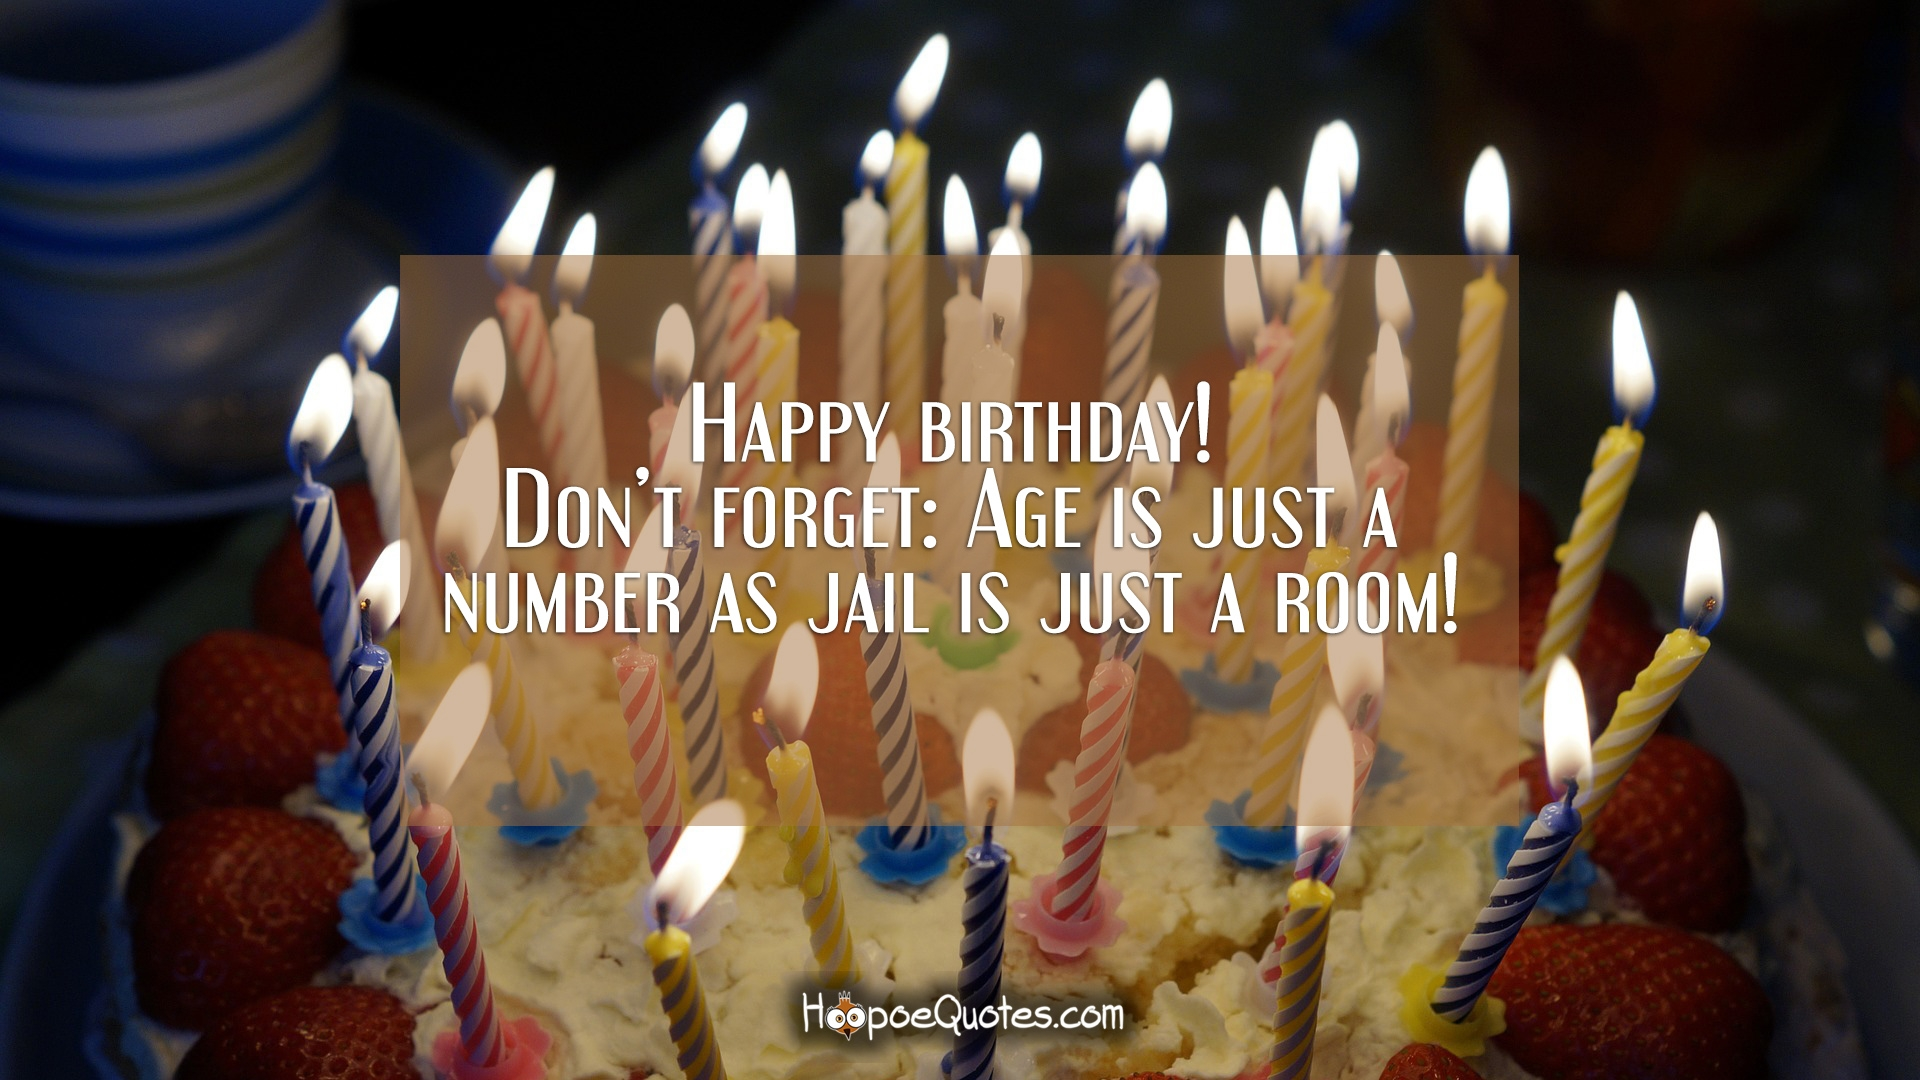 Happy Birthday Dont Forget Age Is Just A Number As Jail Is Just A Room HoopoeQuotes